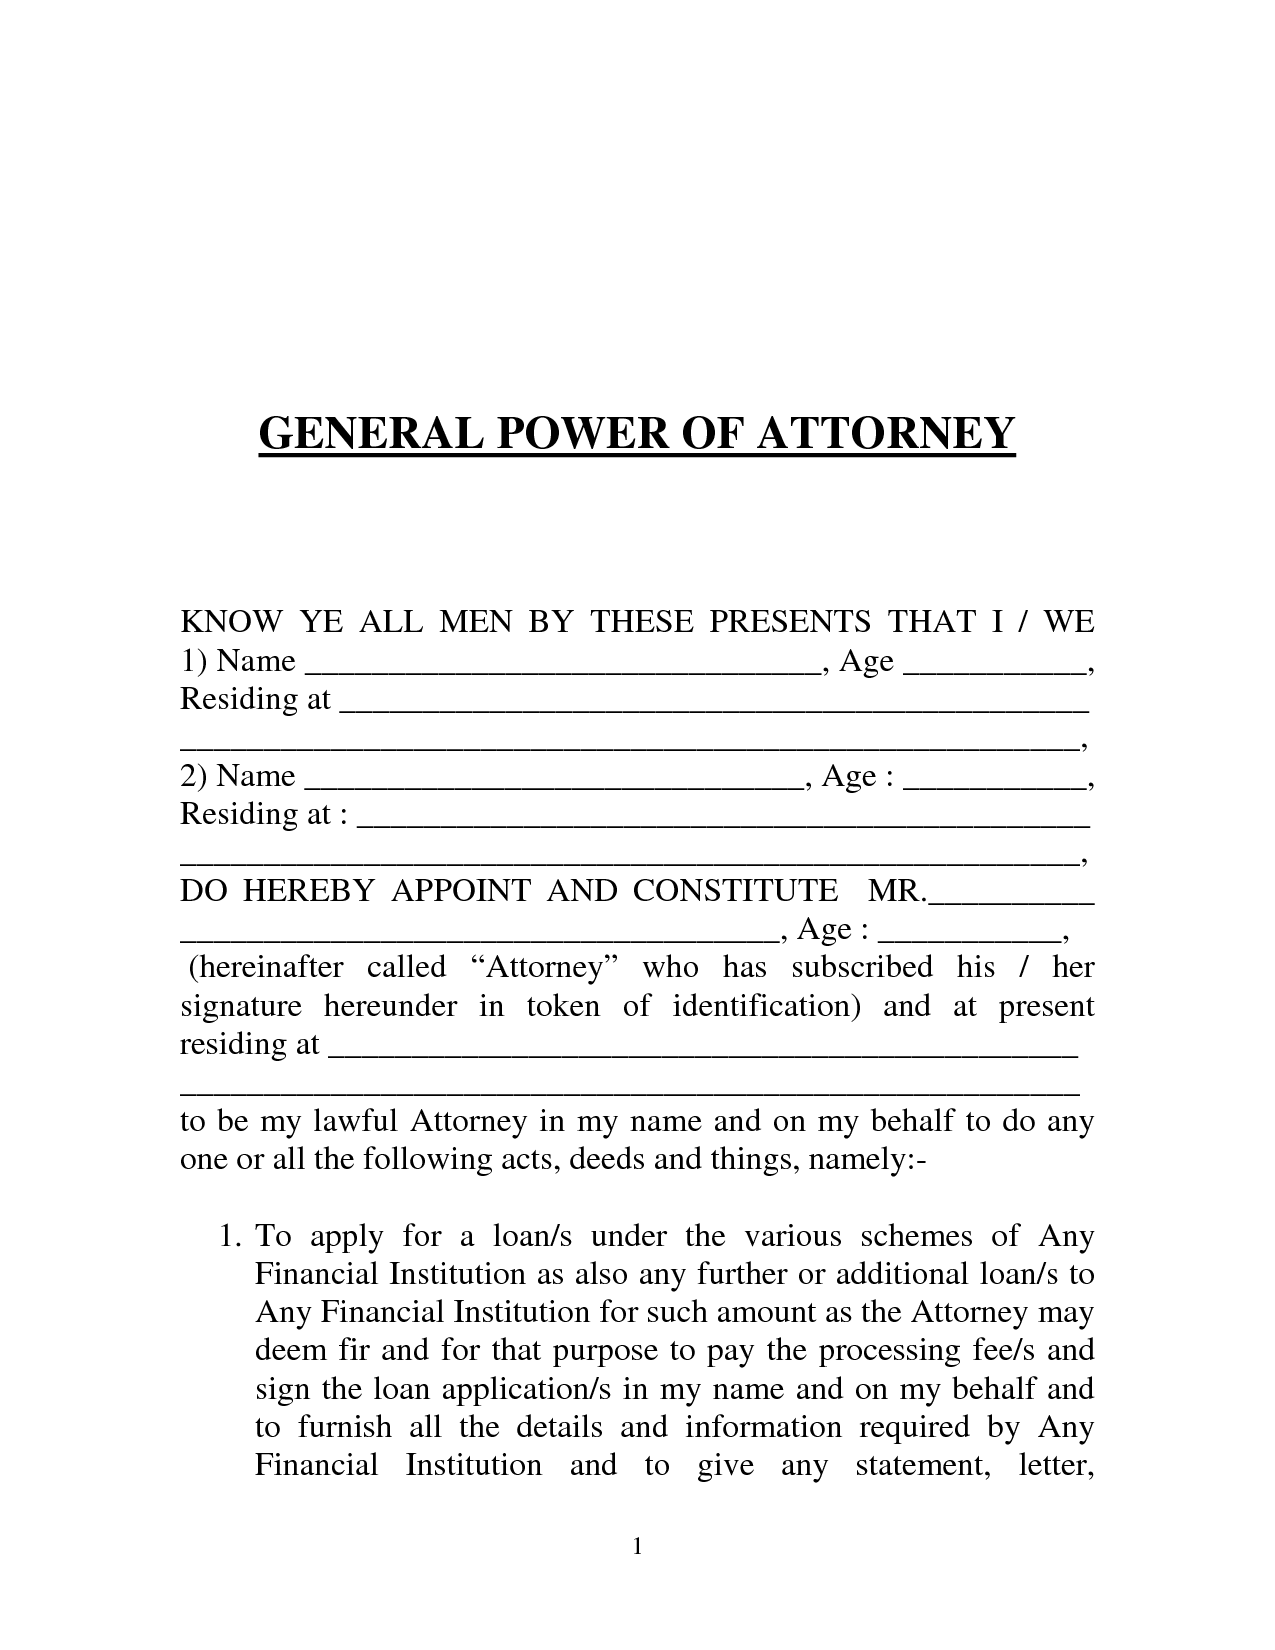 power of attorney form letter  Printable Sample Power of Attorney Form | Power of ..